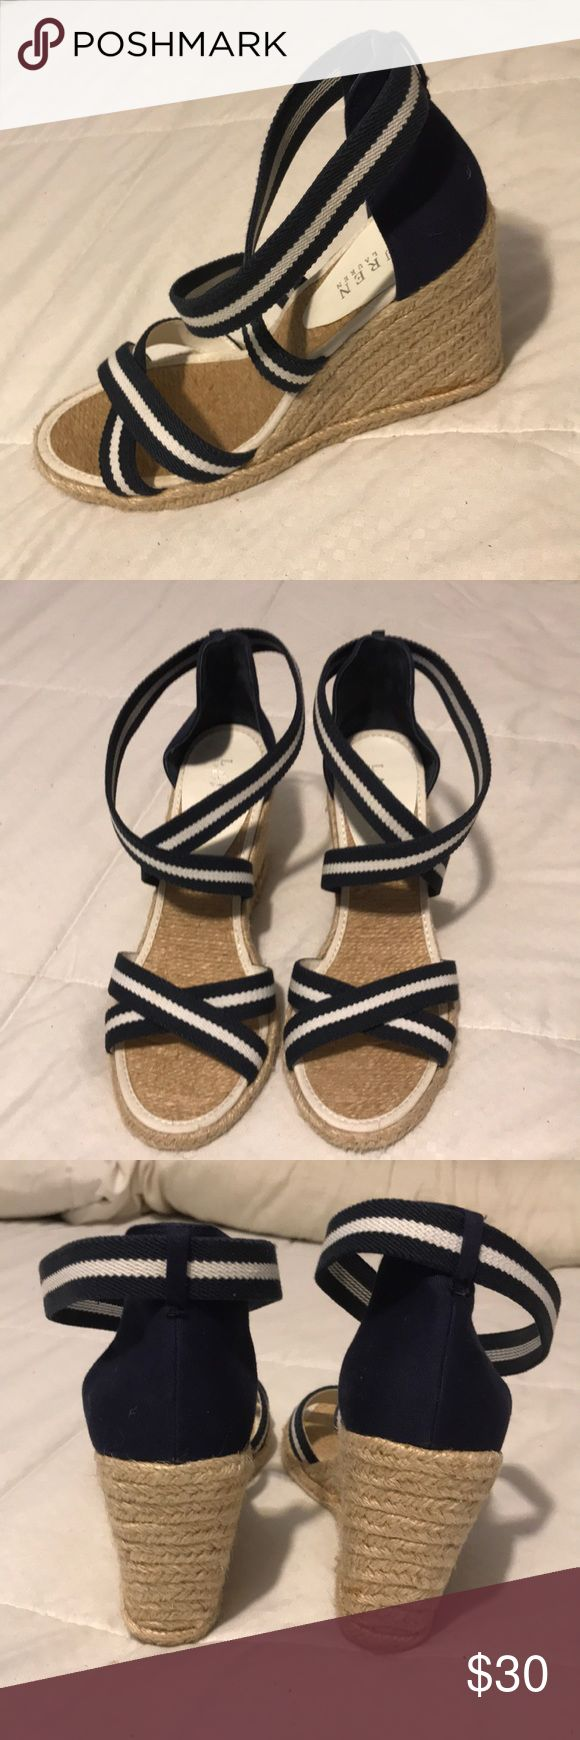 Ralph Lauren Navy White Fabric Wedge Shoes Gorgeous Lauren Ralph Lauren Navy White Elastic straps and fabric back espadrille Wedge. Ankle wrap. Lauren Ralph Lauren Shoes Wedges